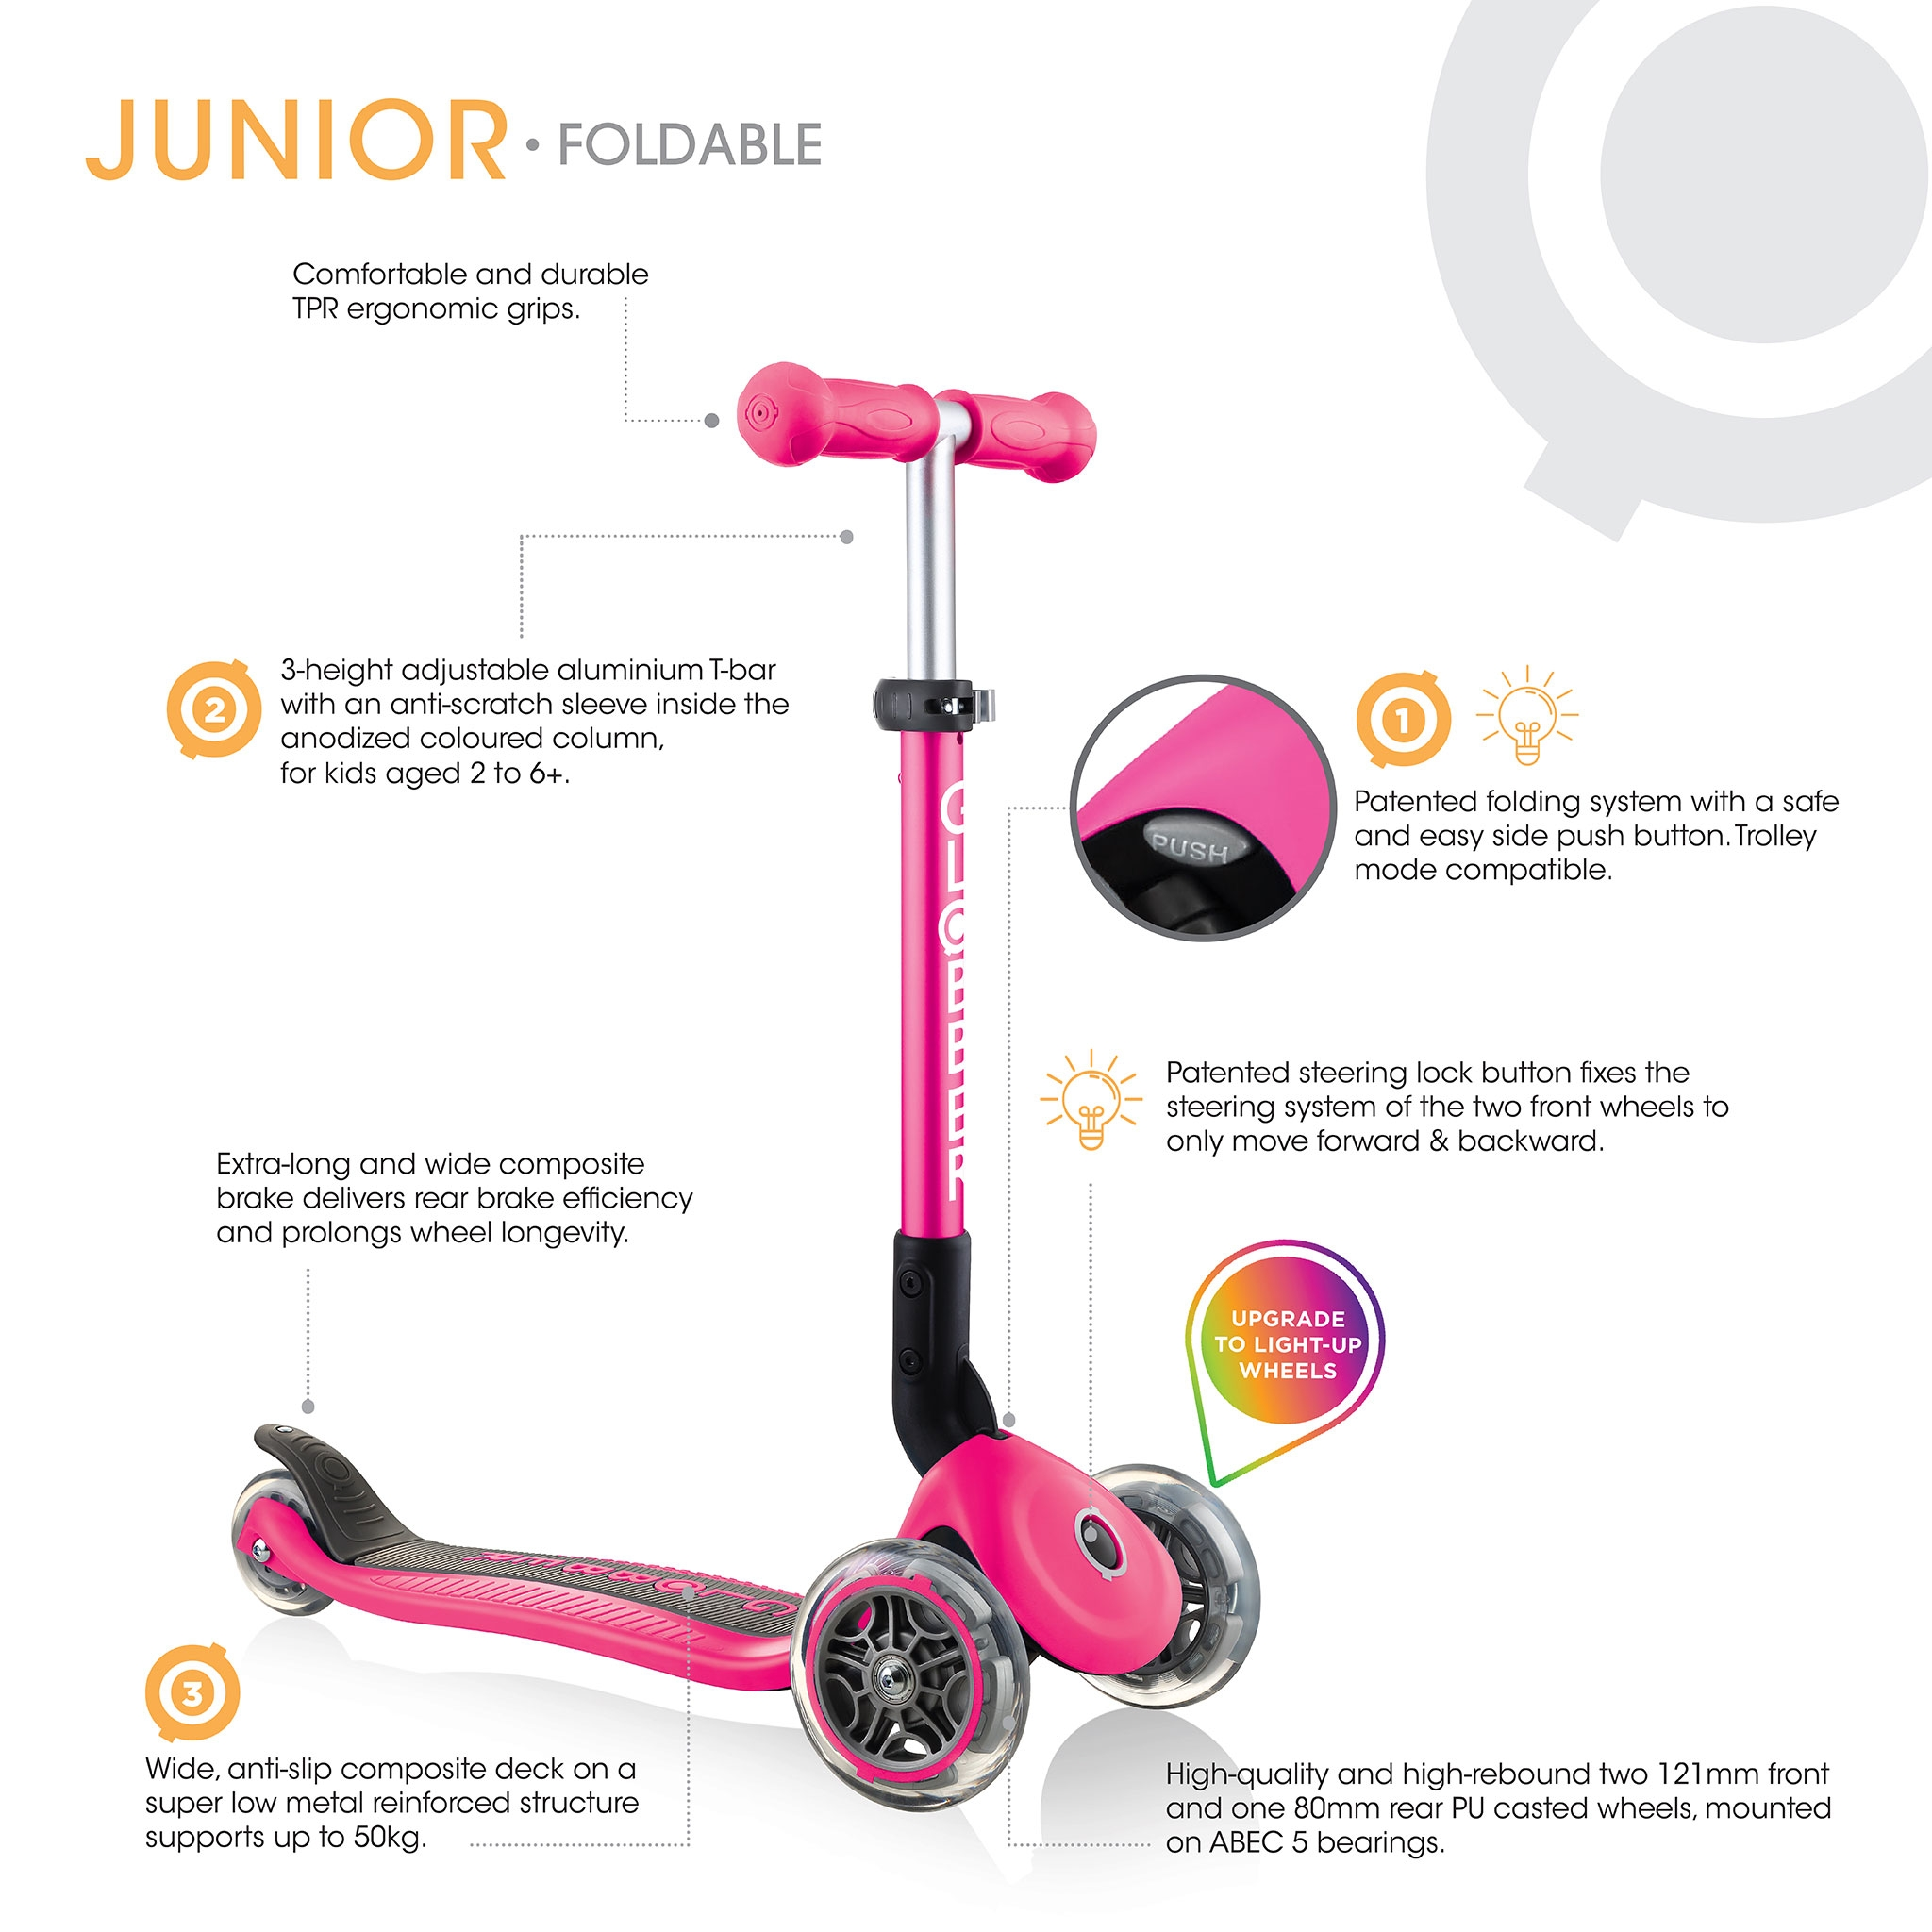 3-wheel-foldable-light-up-scooter-for-toddlers-aged-2-and-above-Globber-JUNIOR-FOLDABLE-LIGHTS 1